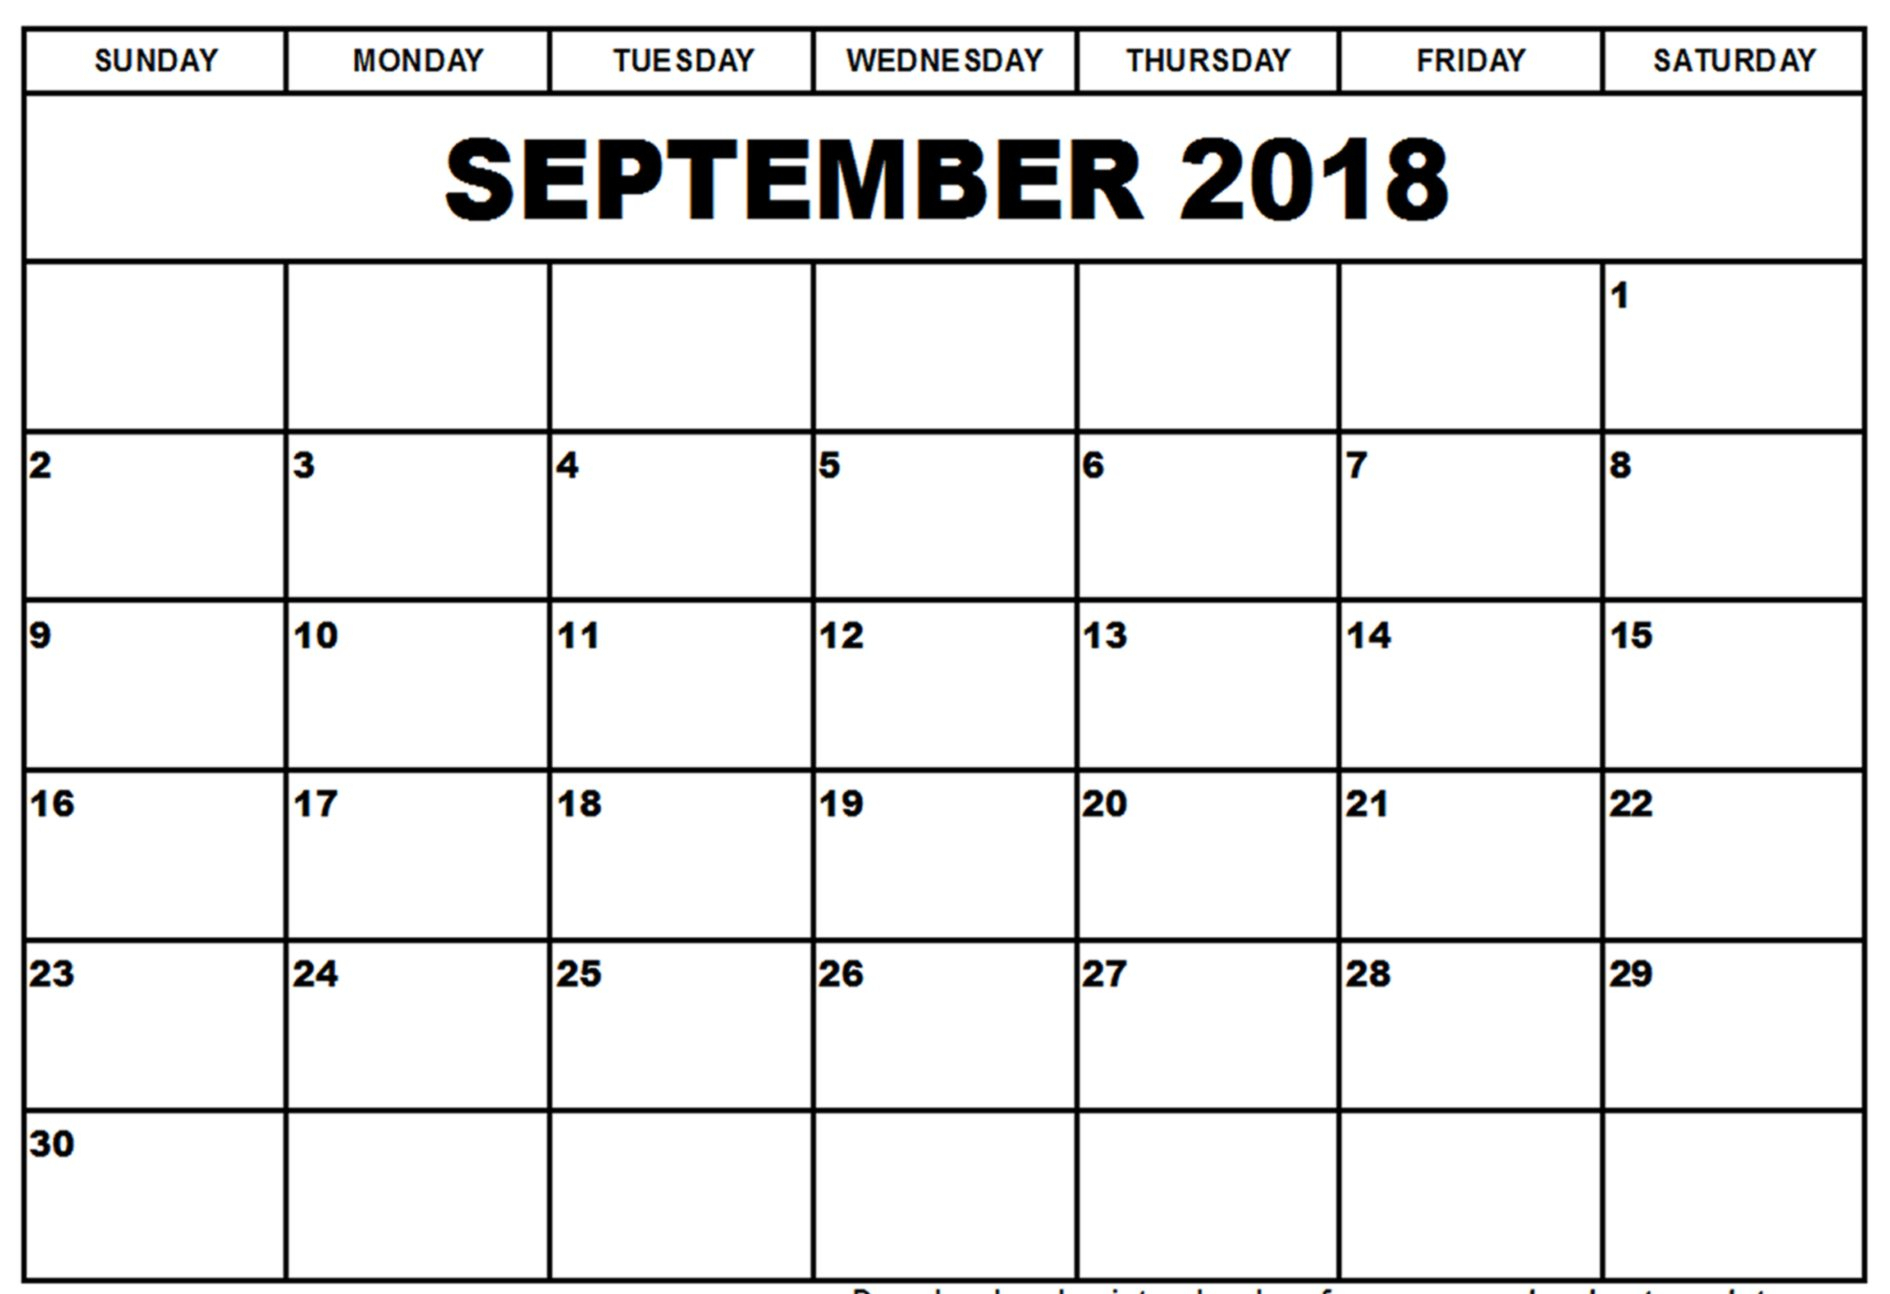 Printable Calendar September 2018 Template Pdf regarding Printable Blank September Calendar